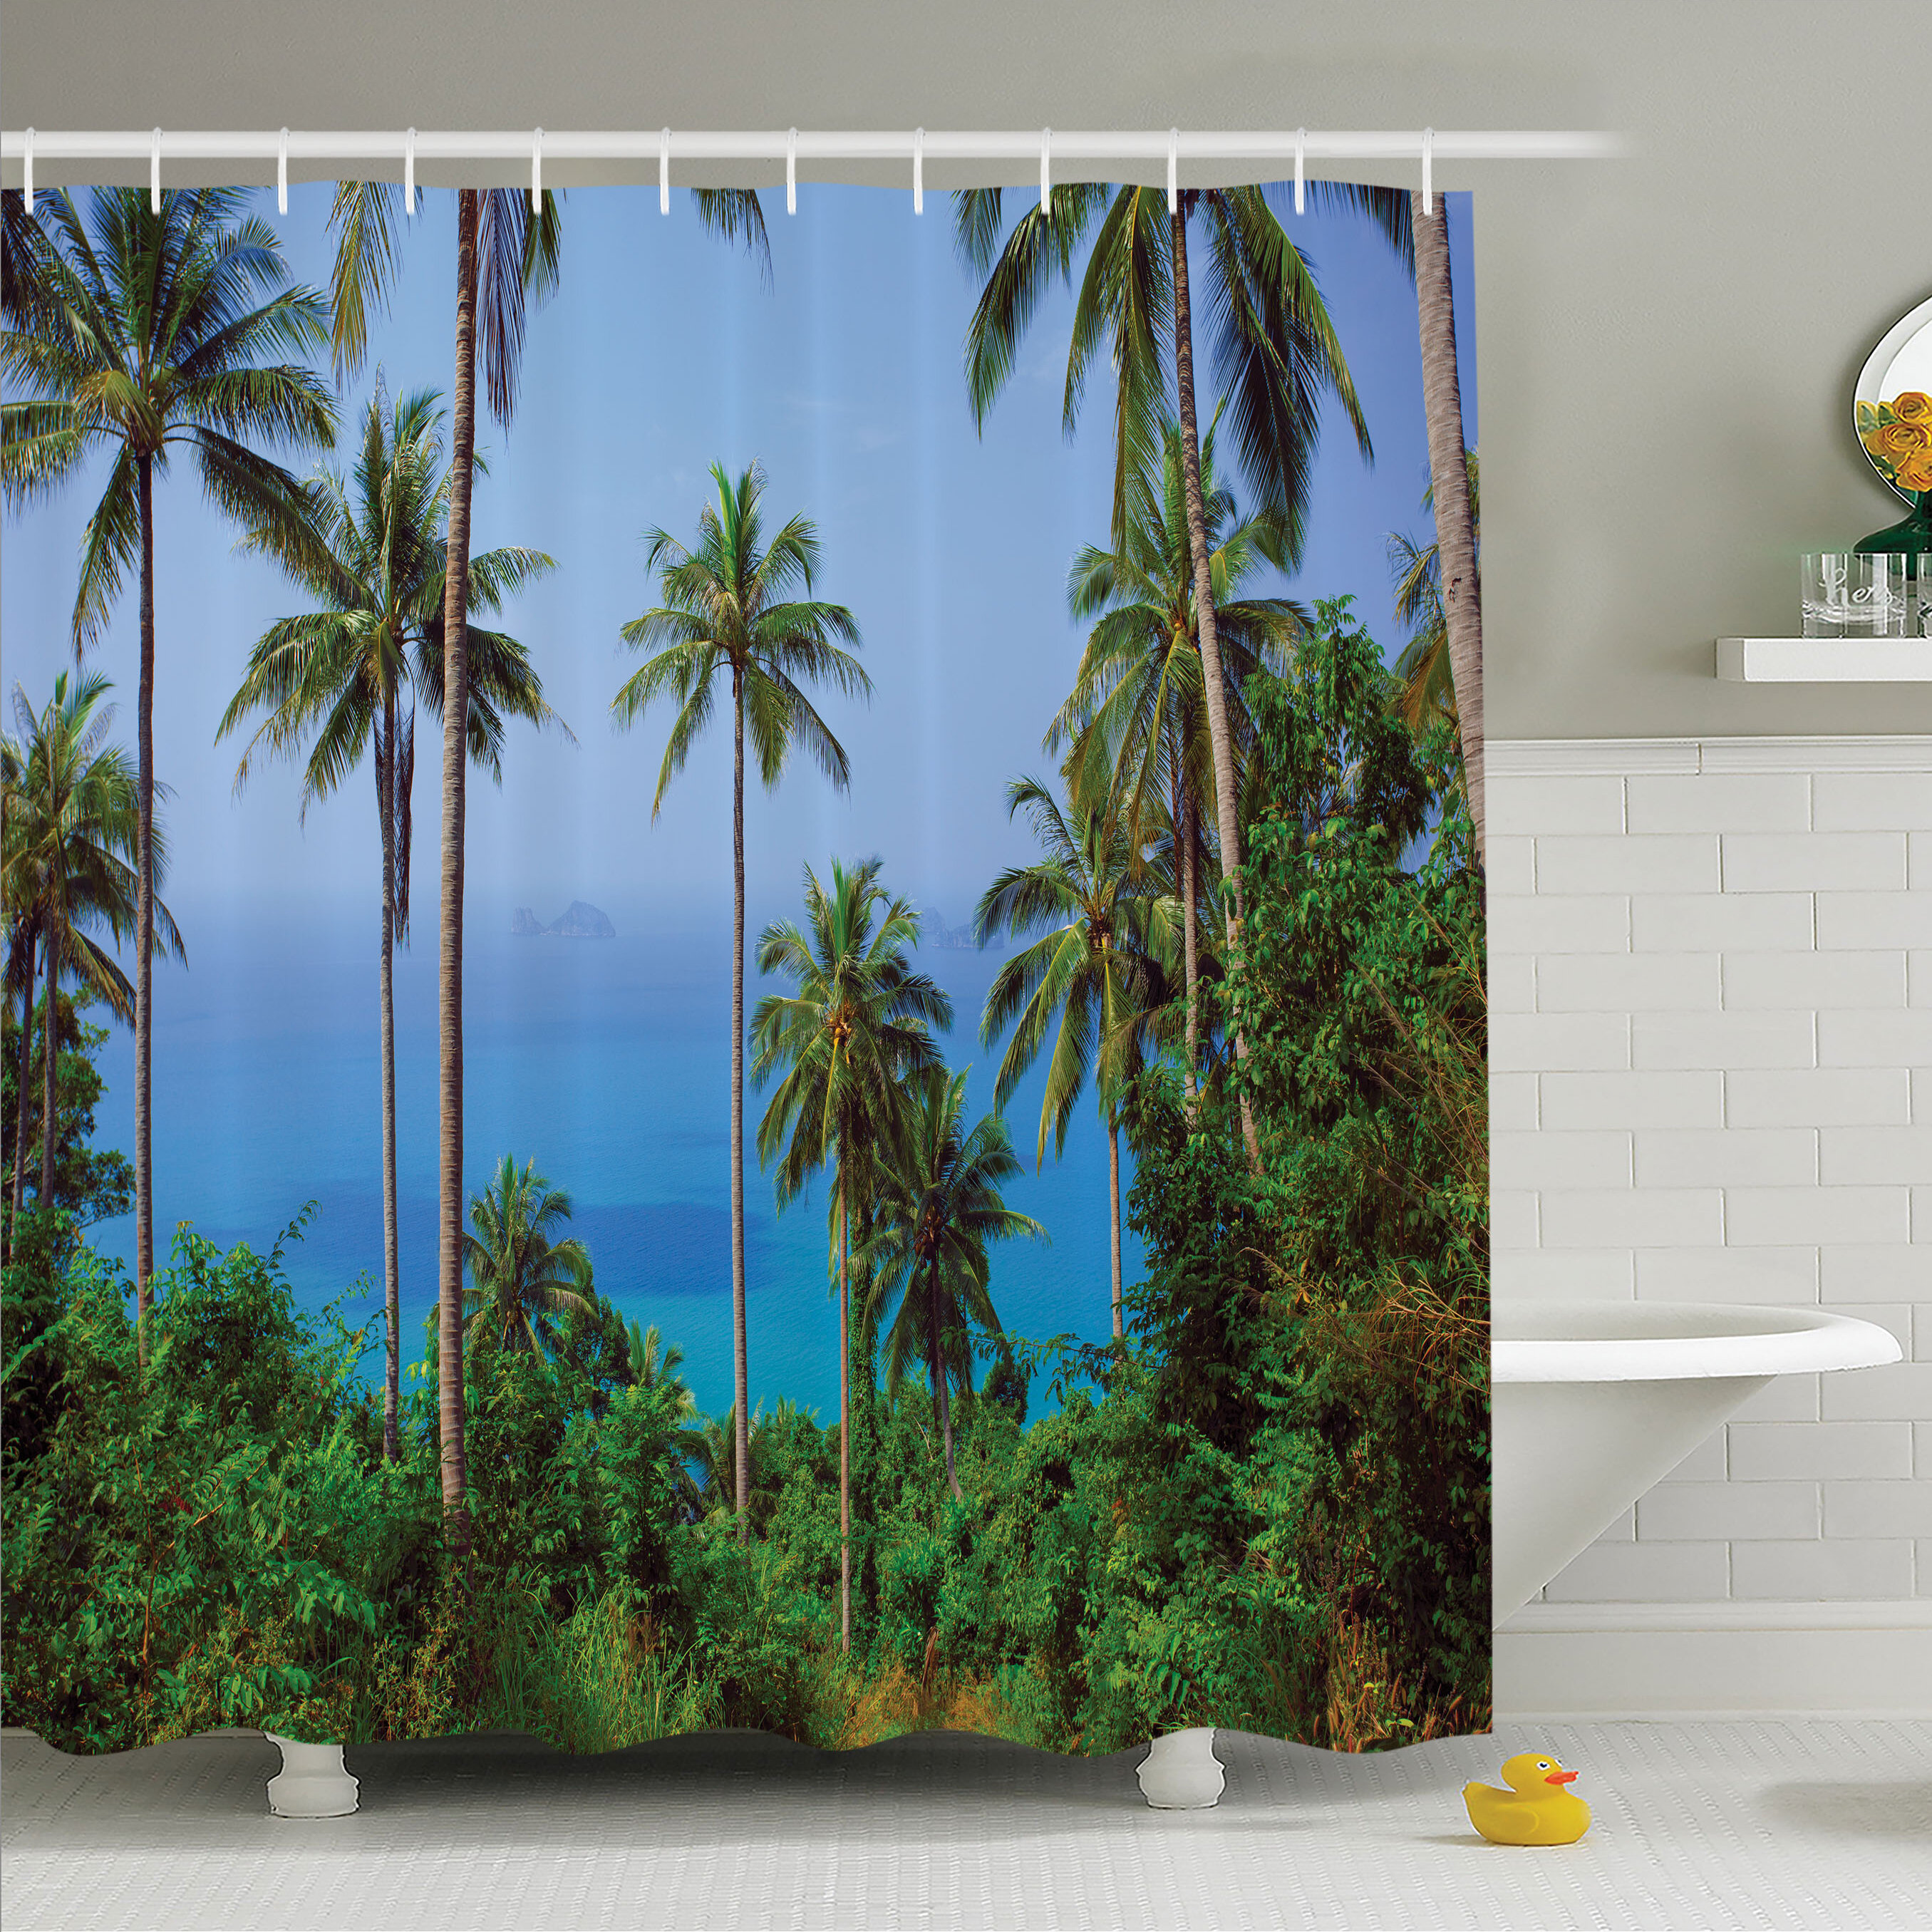 Bathroom Supplies Accessories Hook Colorful Tropical Sea